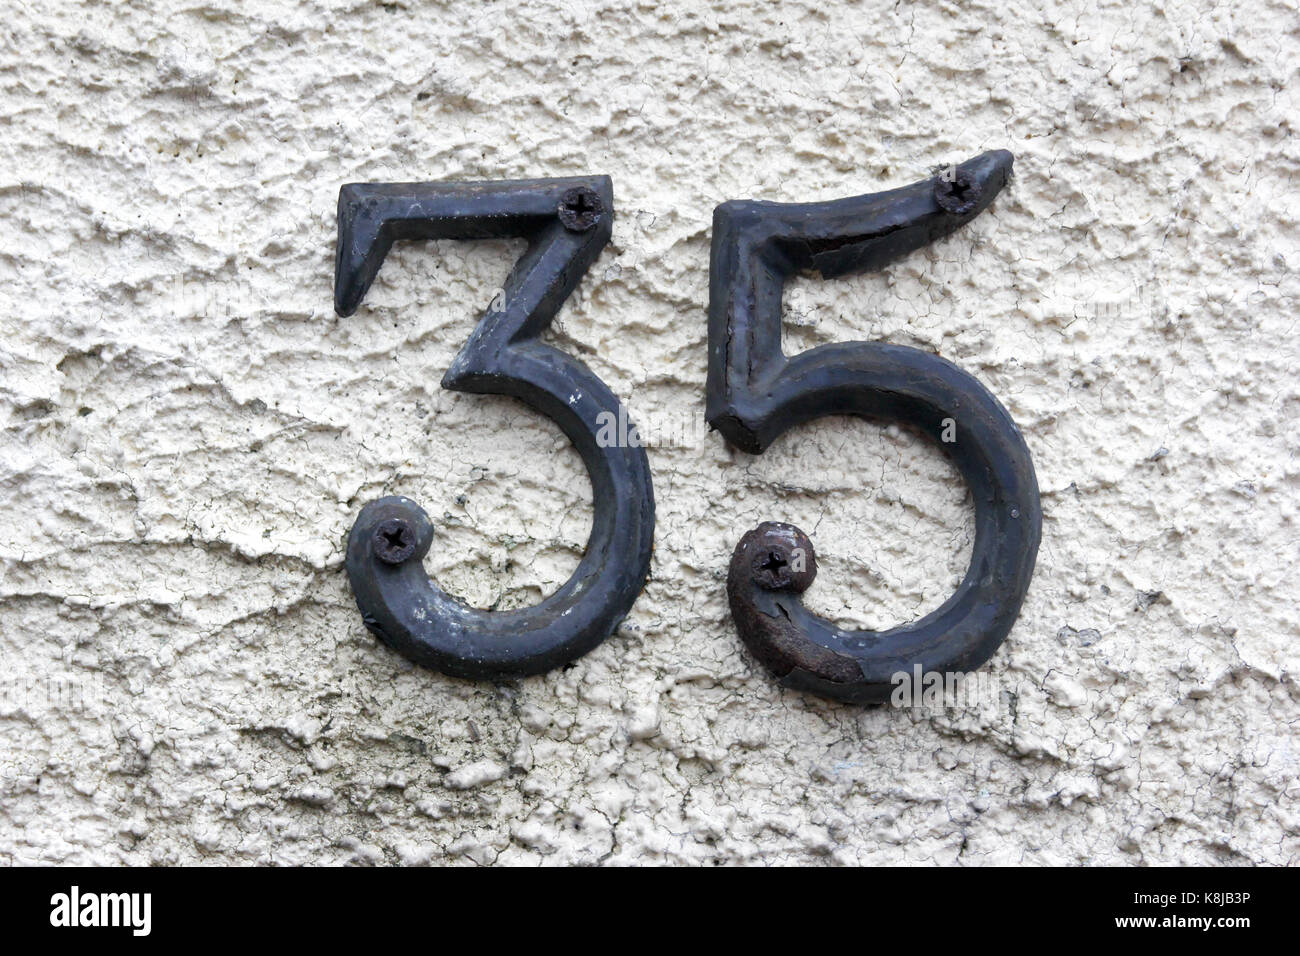 The number 35 in metal screwed on a wall - Stock Image